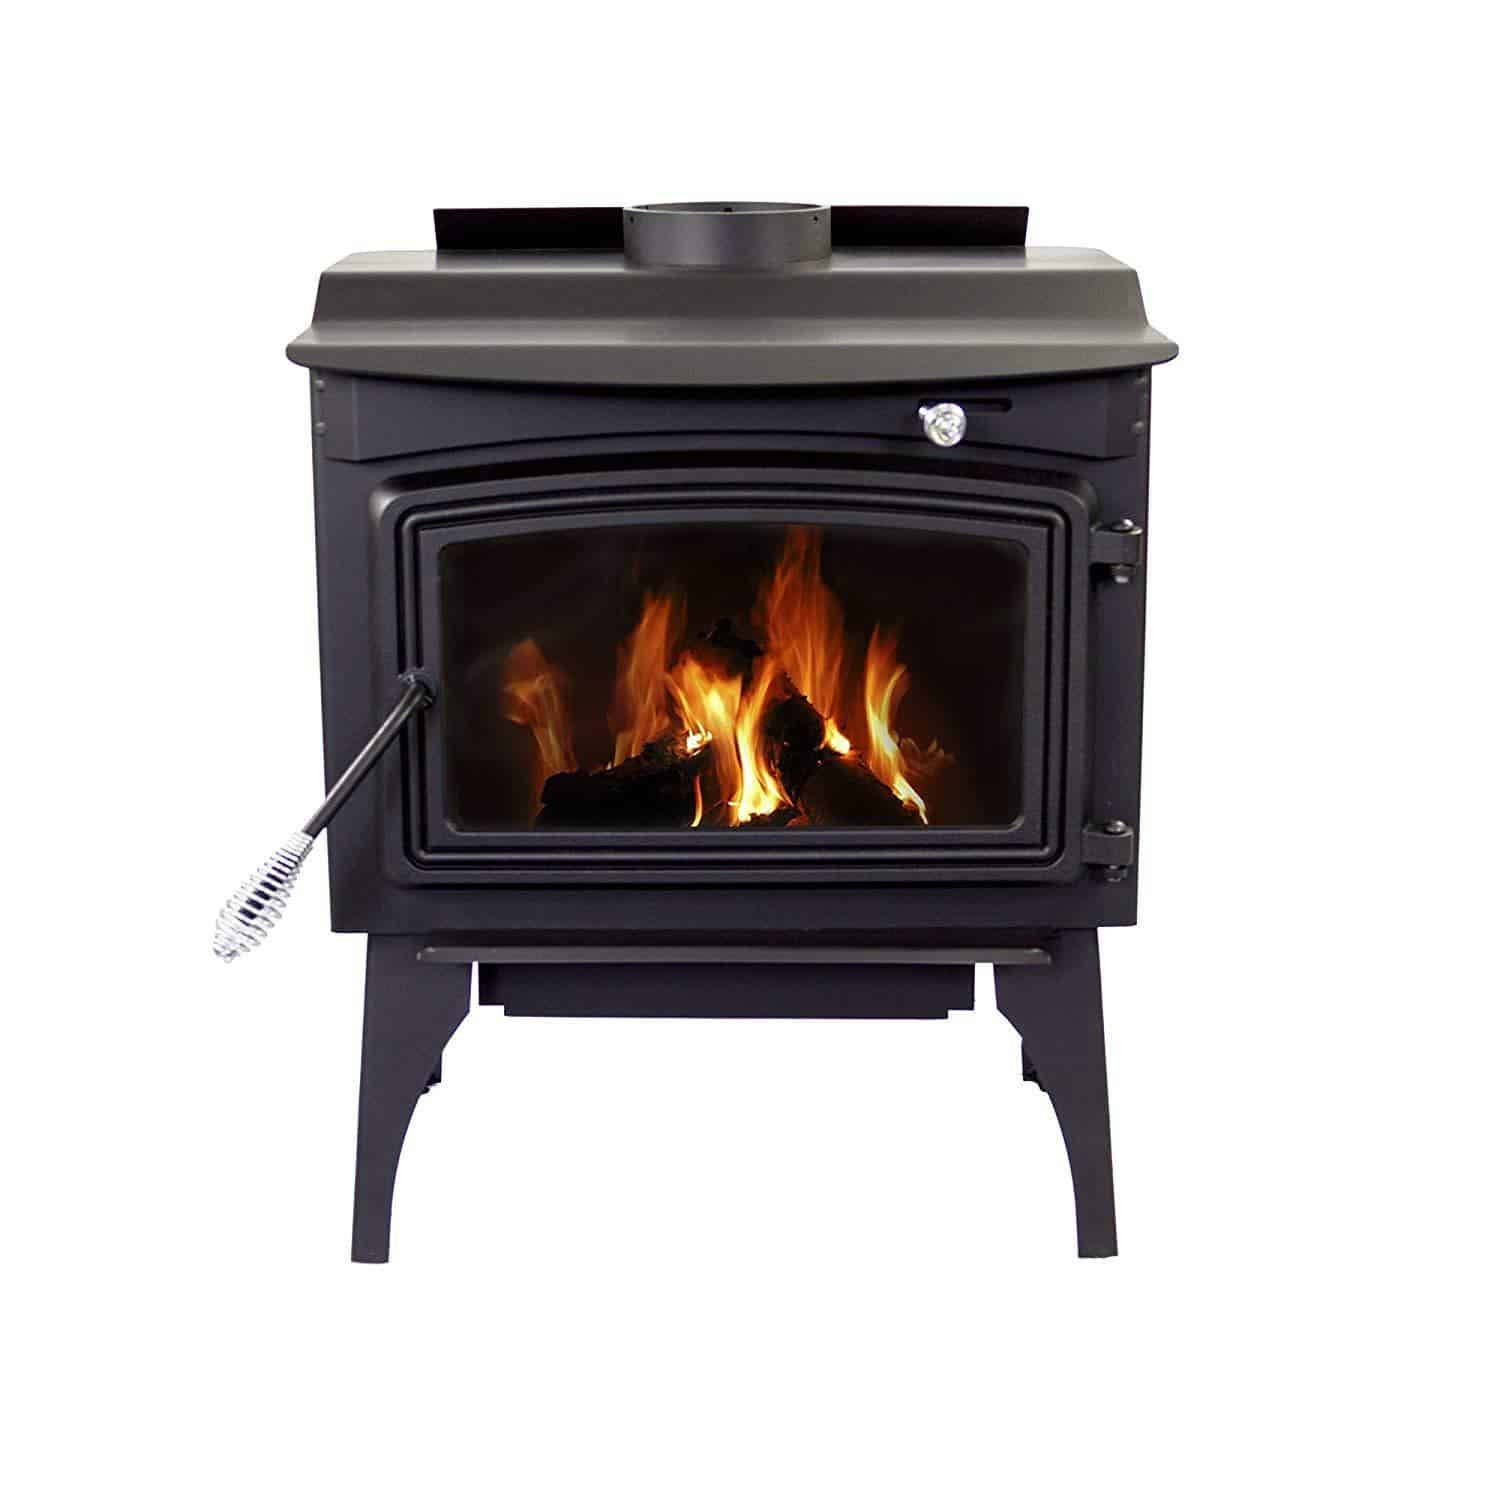 8 Best Wood Stove Buying Guide For Home Heating Camping Wood Burning Stove Best Wood Burning Stove Pellet Stove